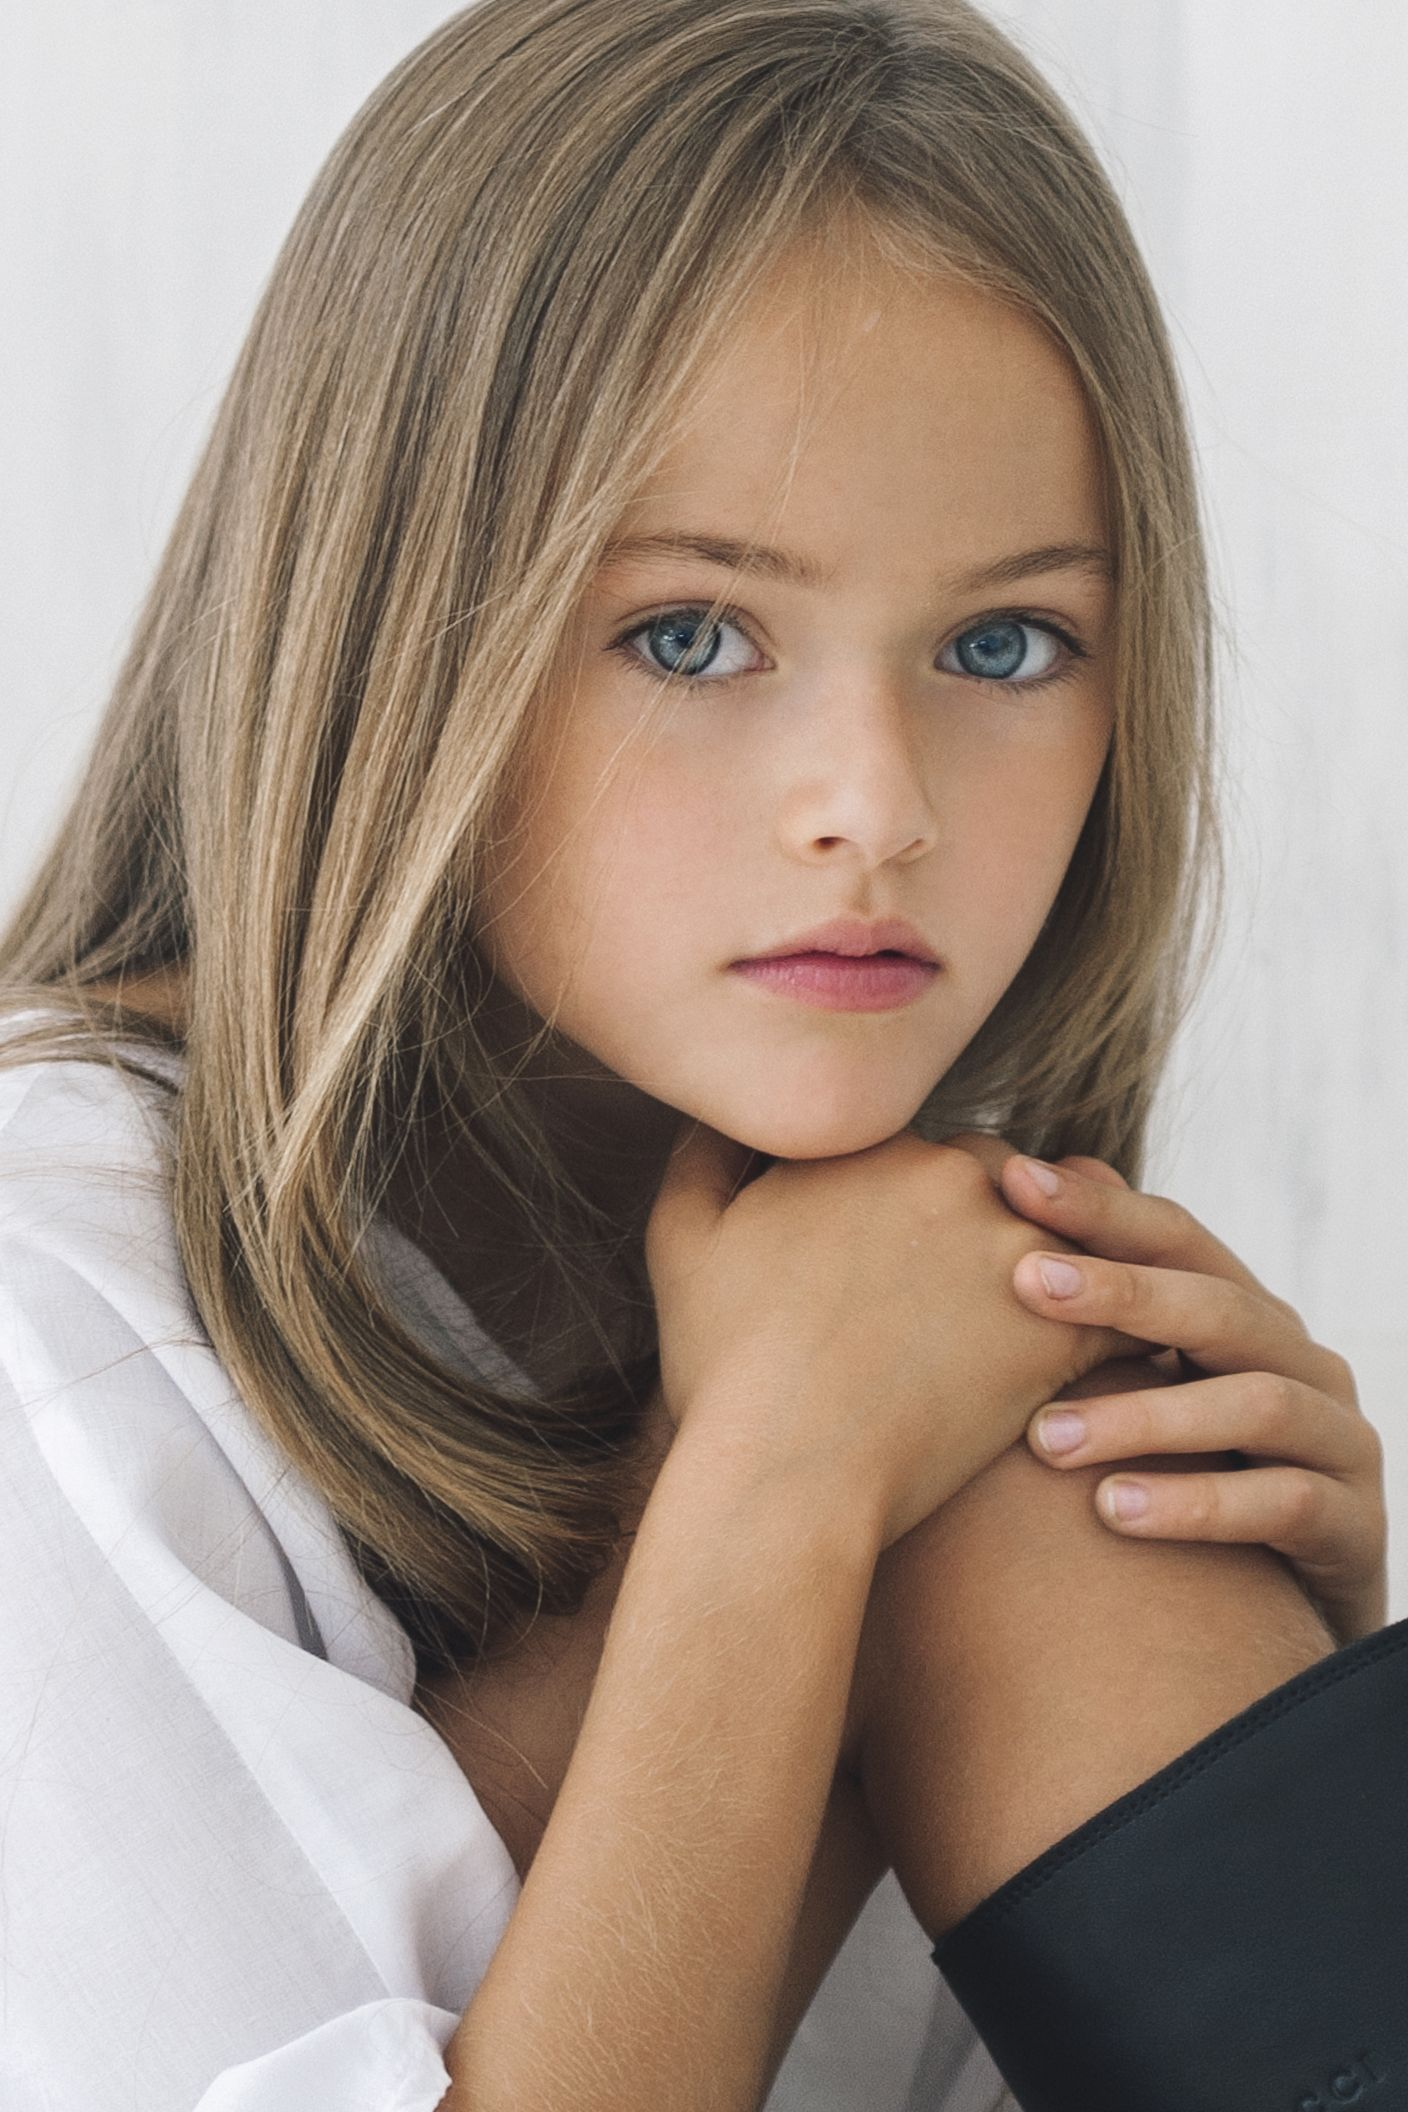 Young russian model kristina consider, that